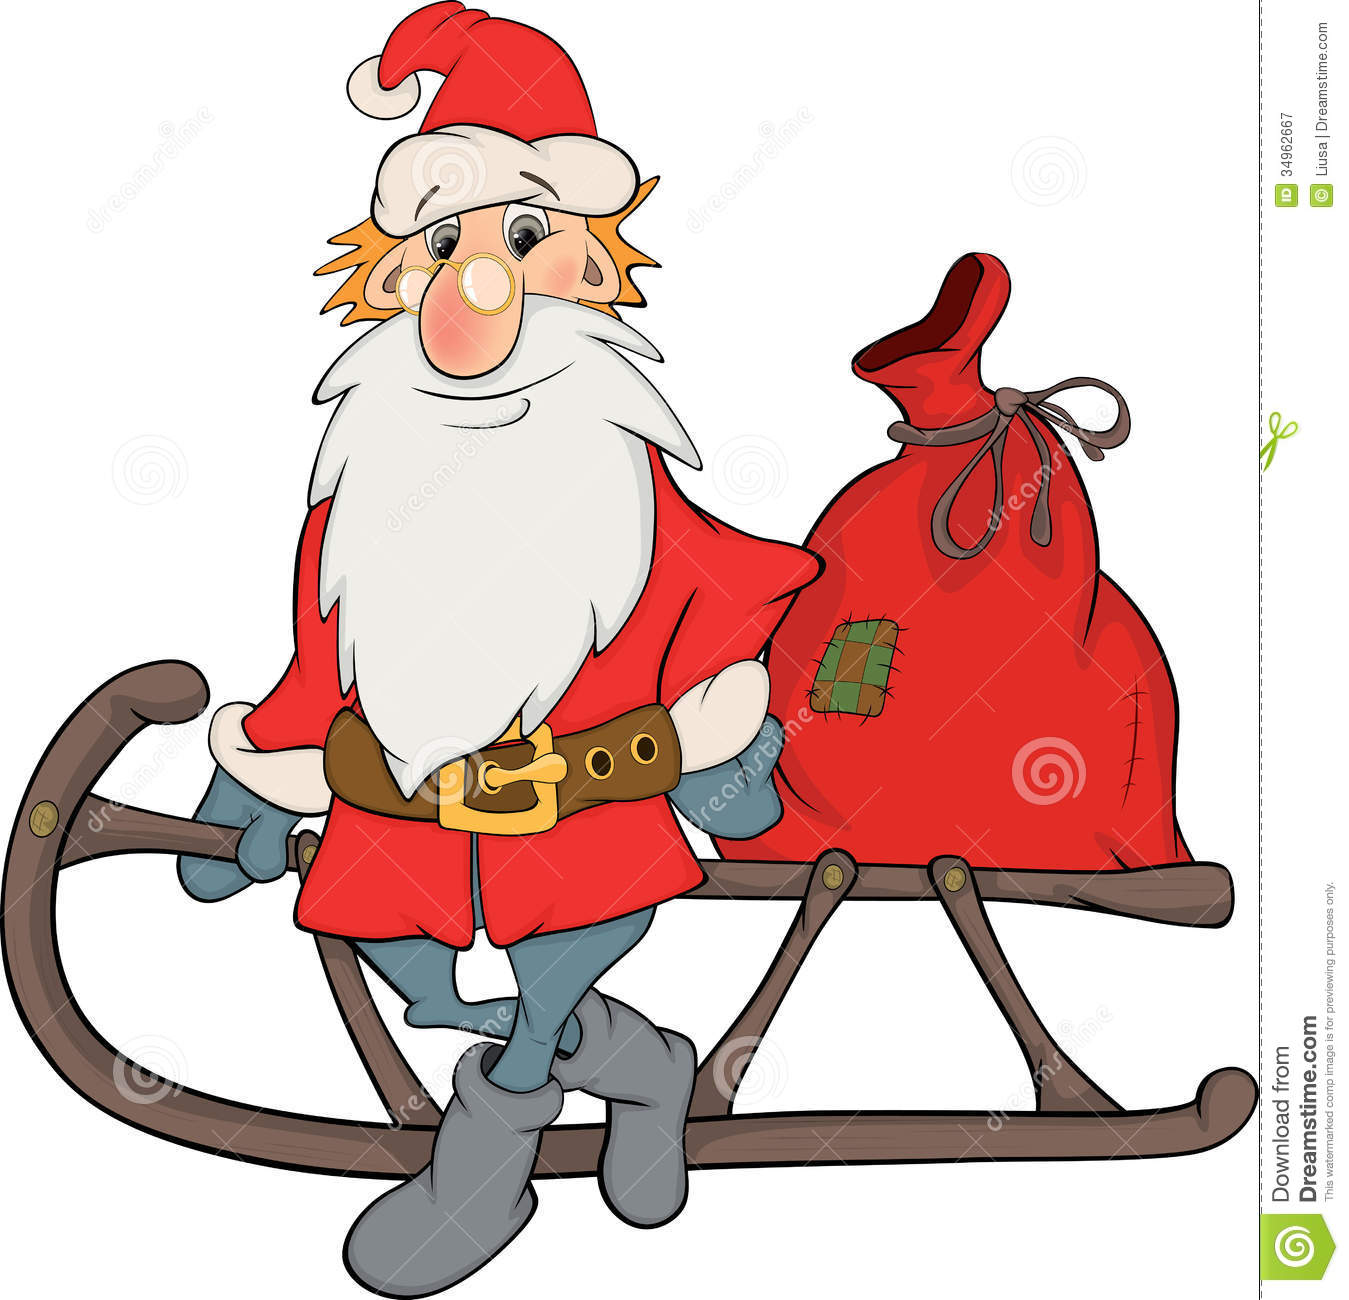 Christmas Toys Cartoon : Santa claus and christmas gifts cartoon stock vector